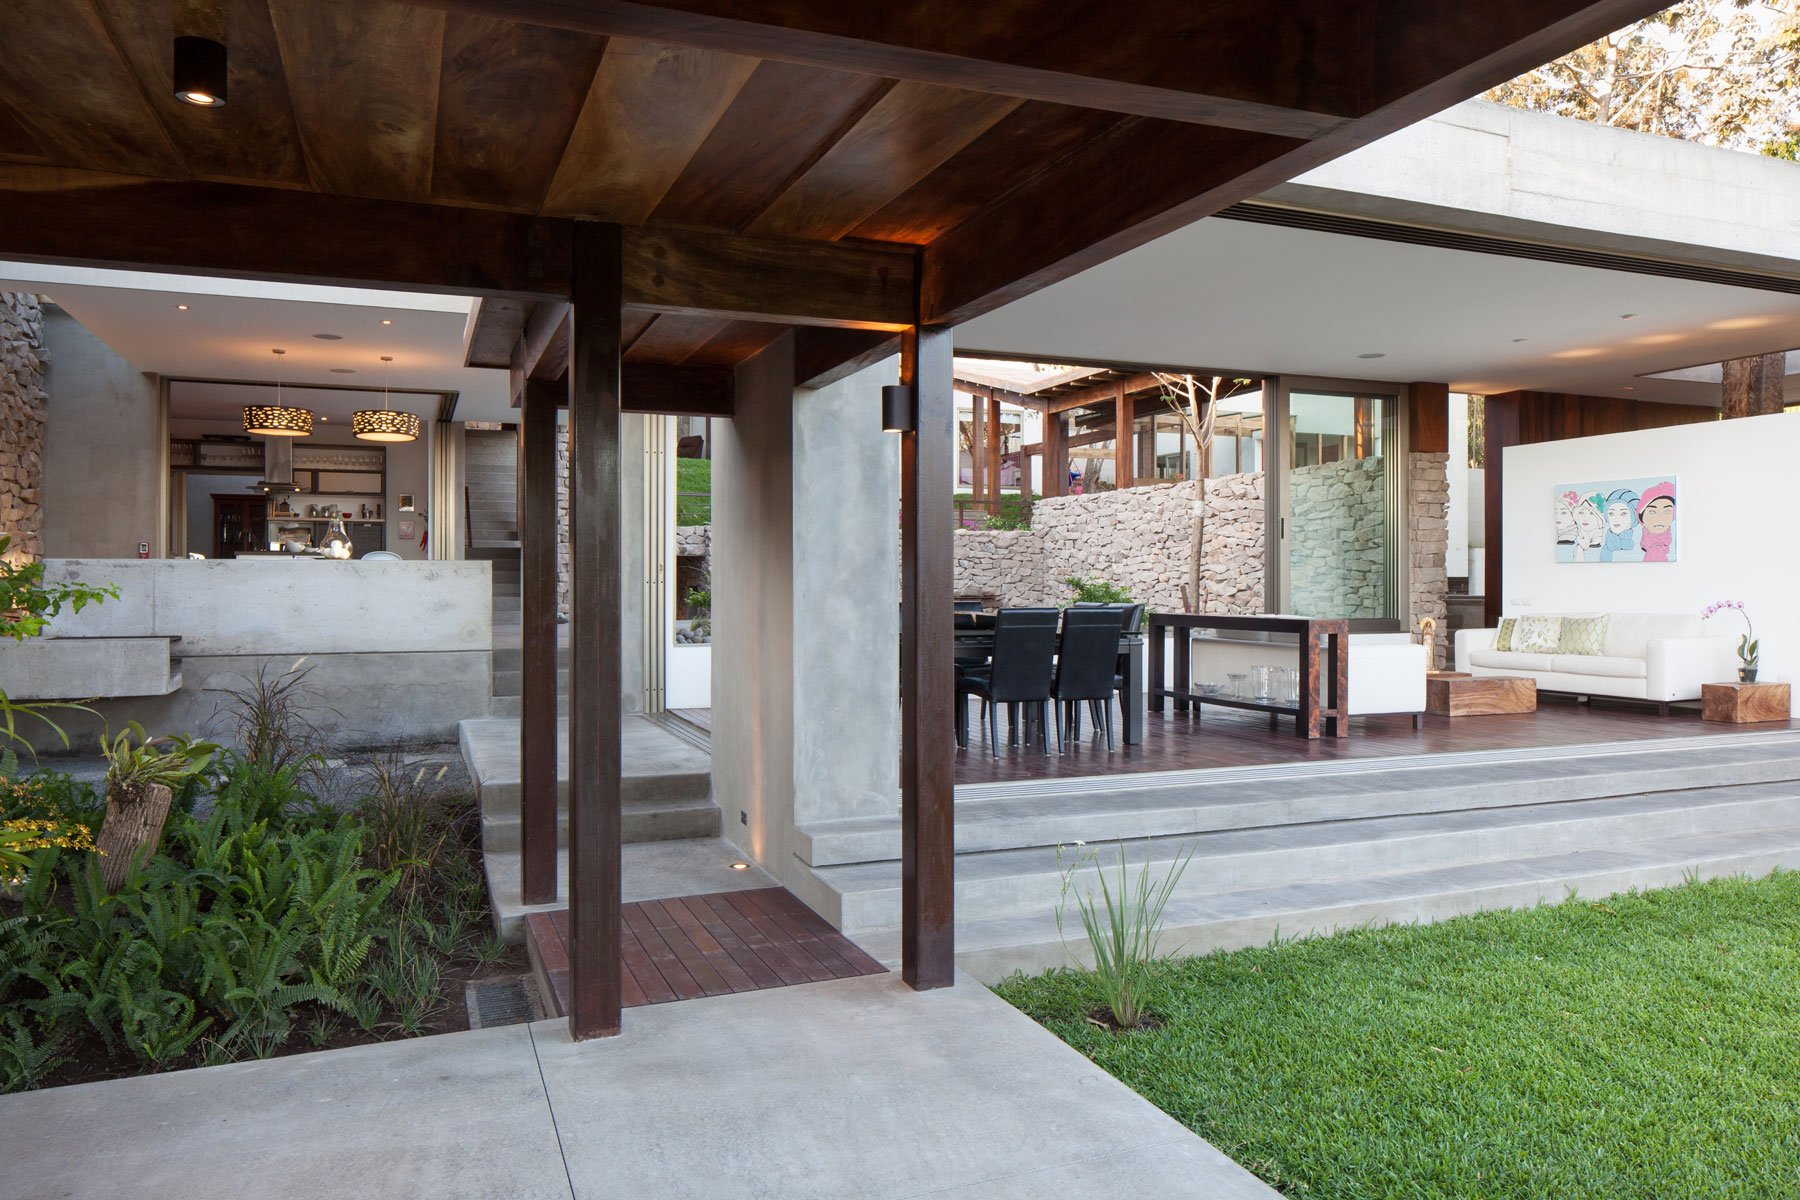 Modern Rustic Sensation Of Garden House In El Salvador By Cincopatasalgato Caandesign